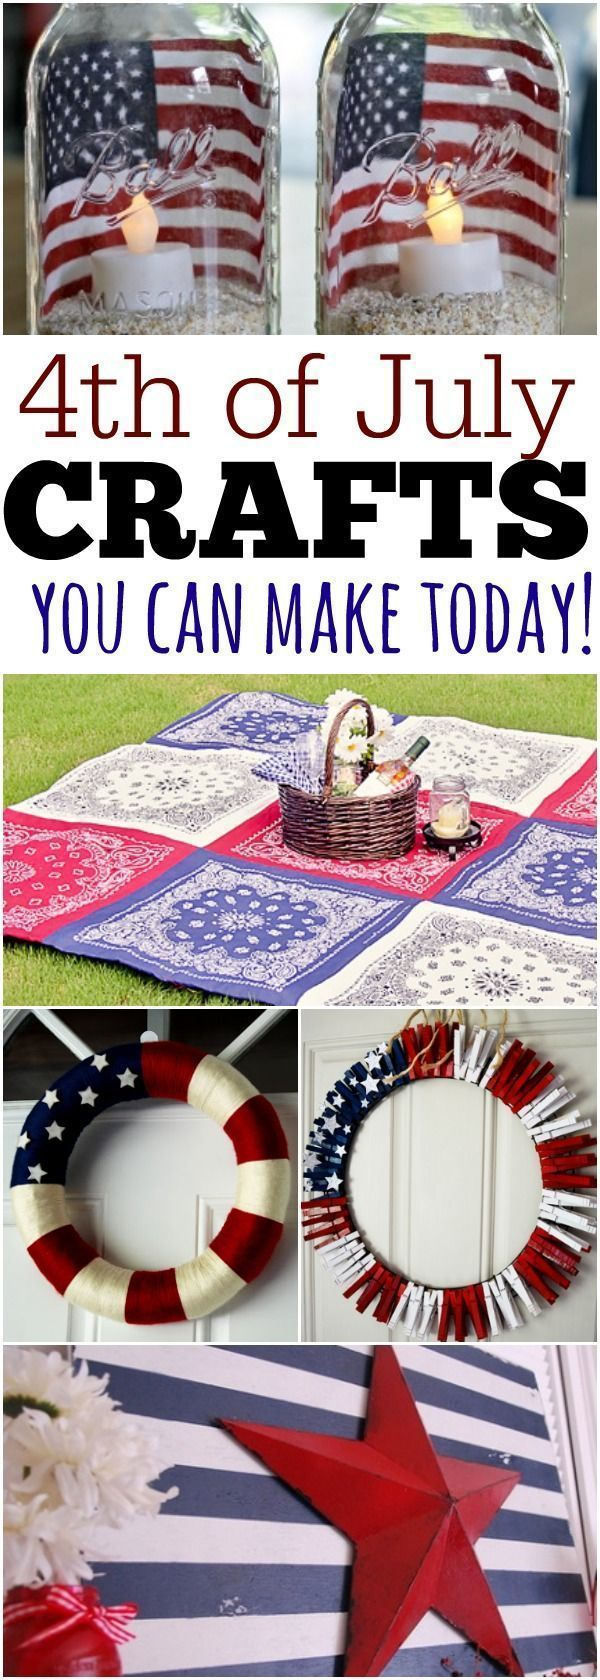 Fourth of July Crafts- Lots of 4th of July Crafts to make everything patriotic. images